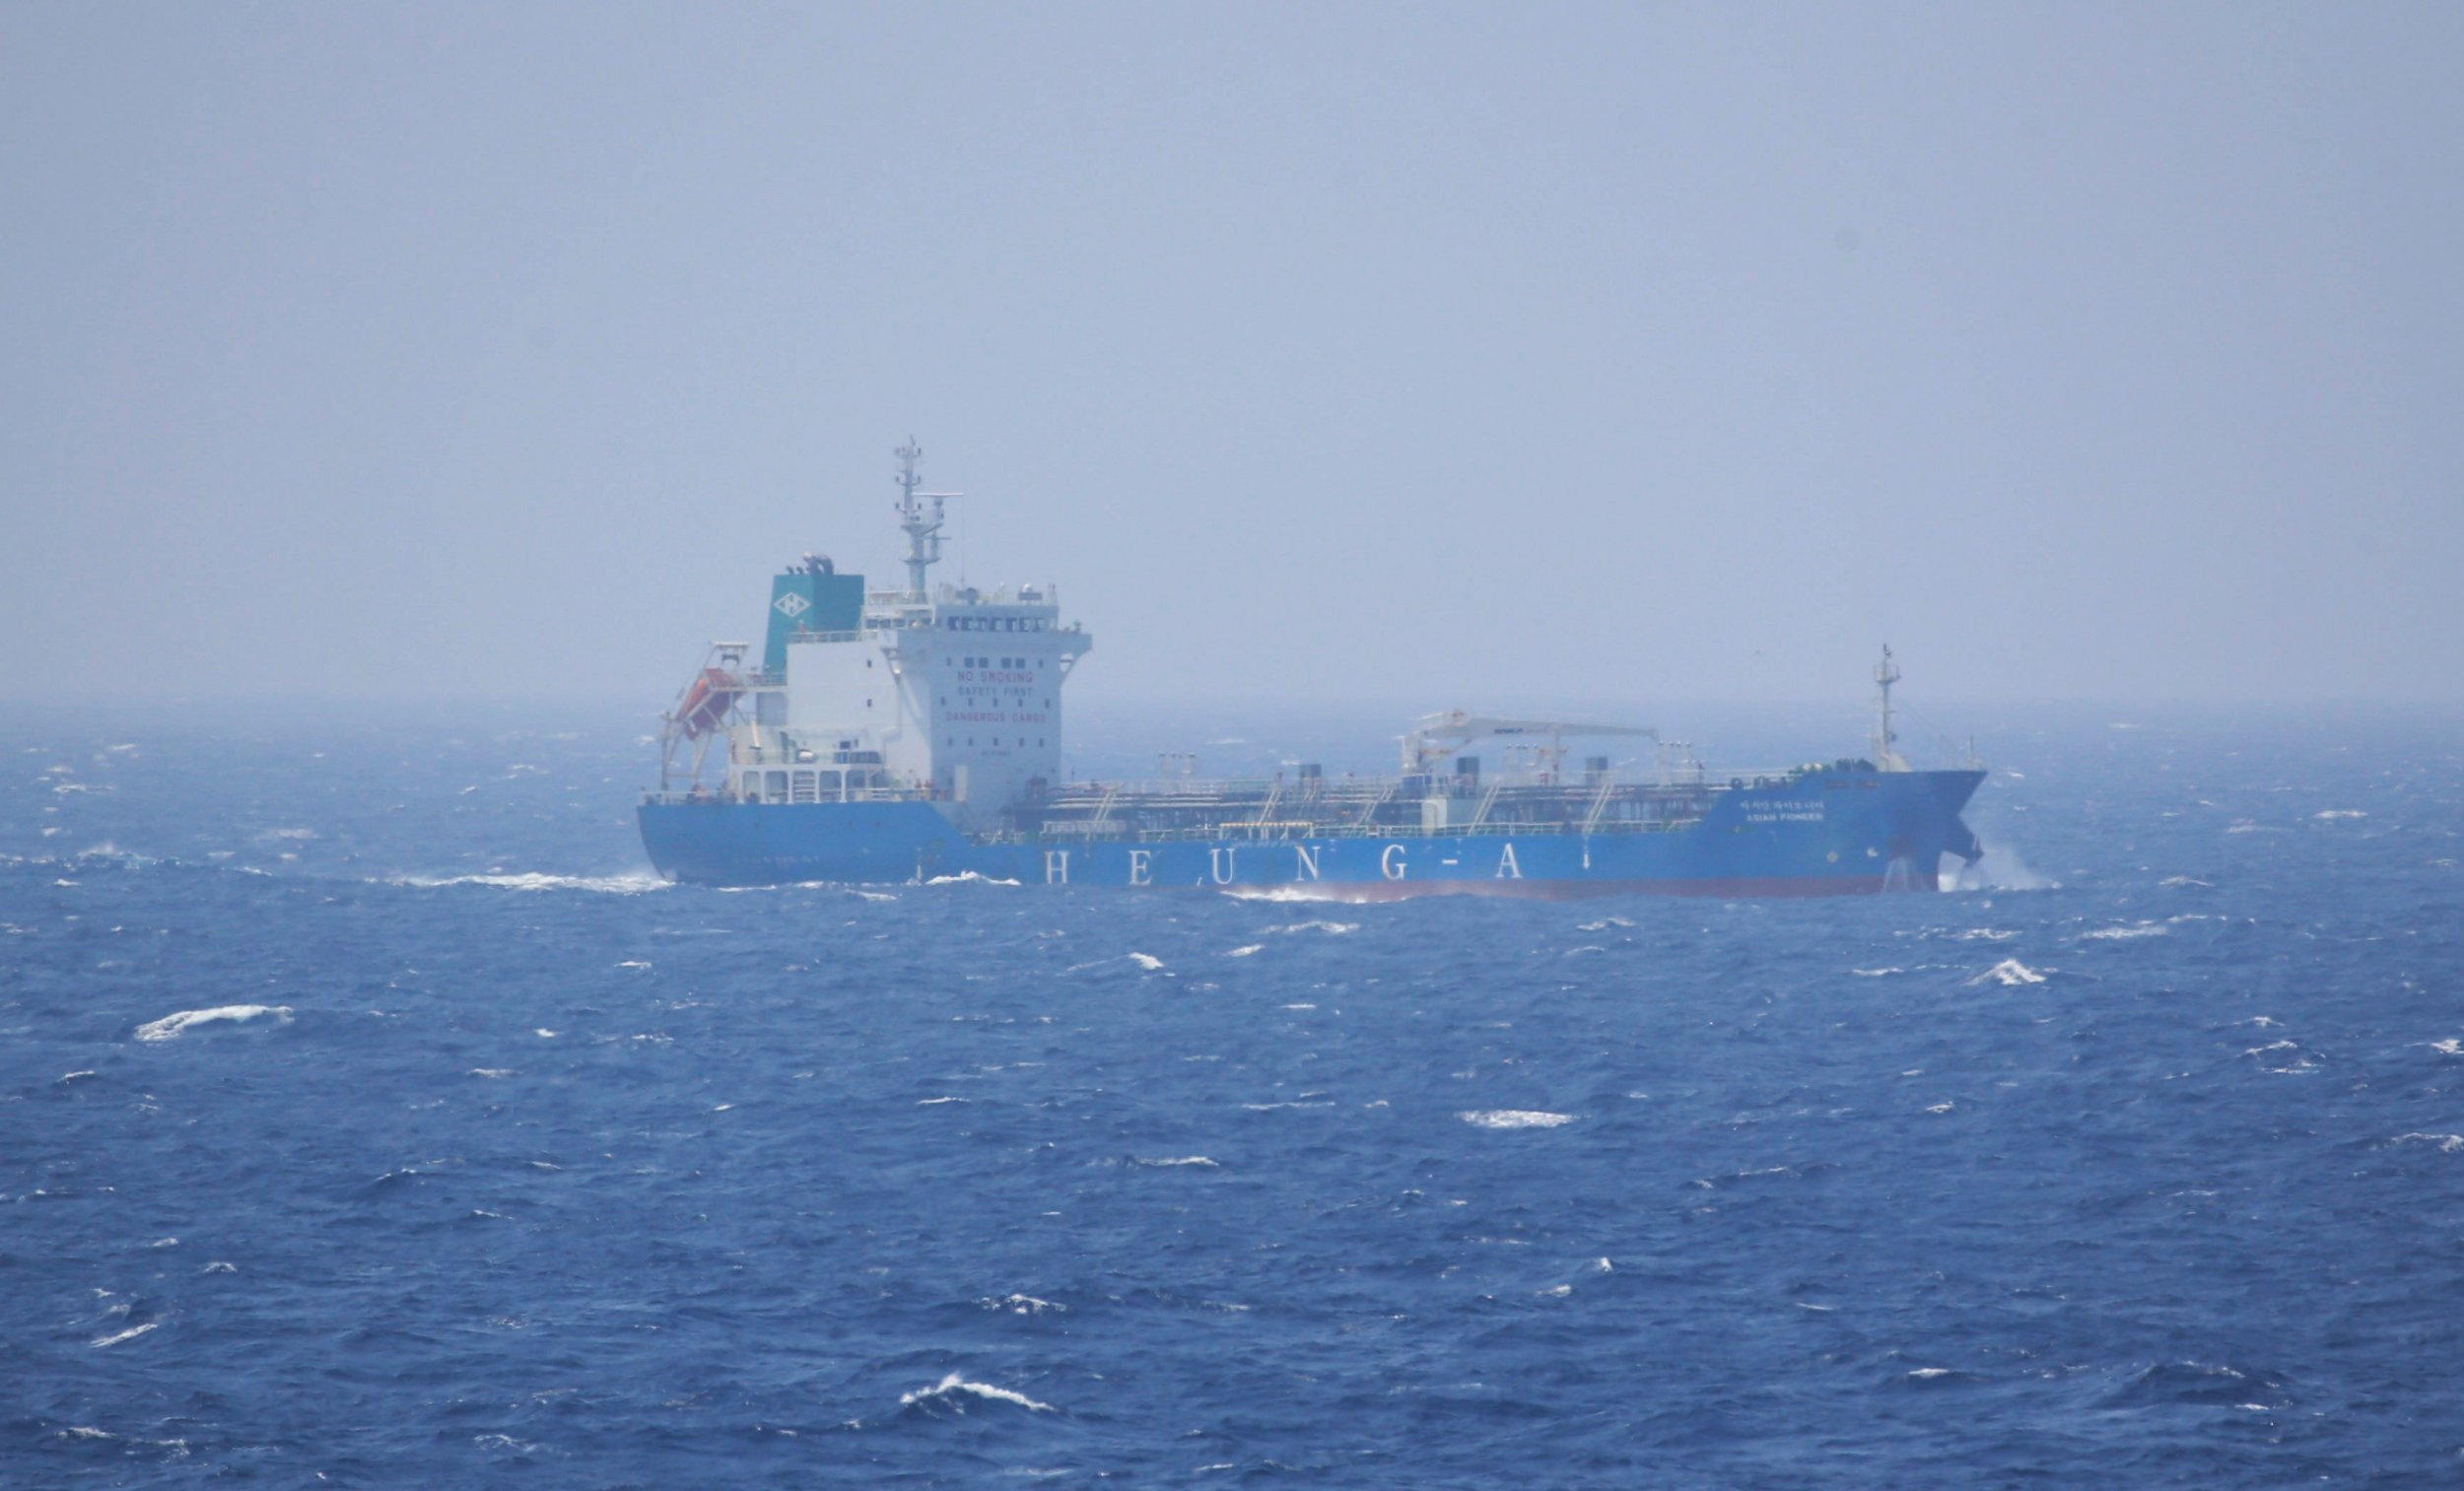 Ship in South China Sea